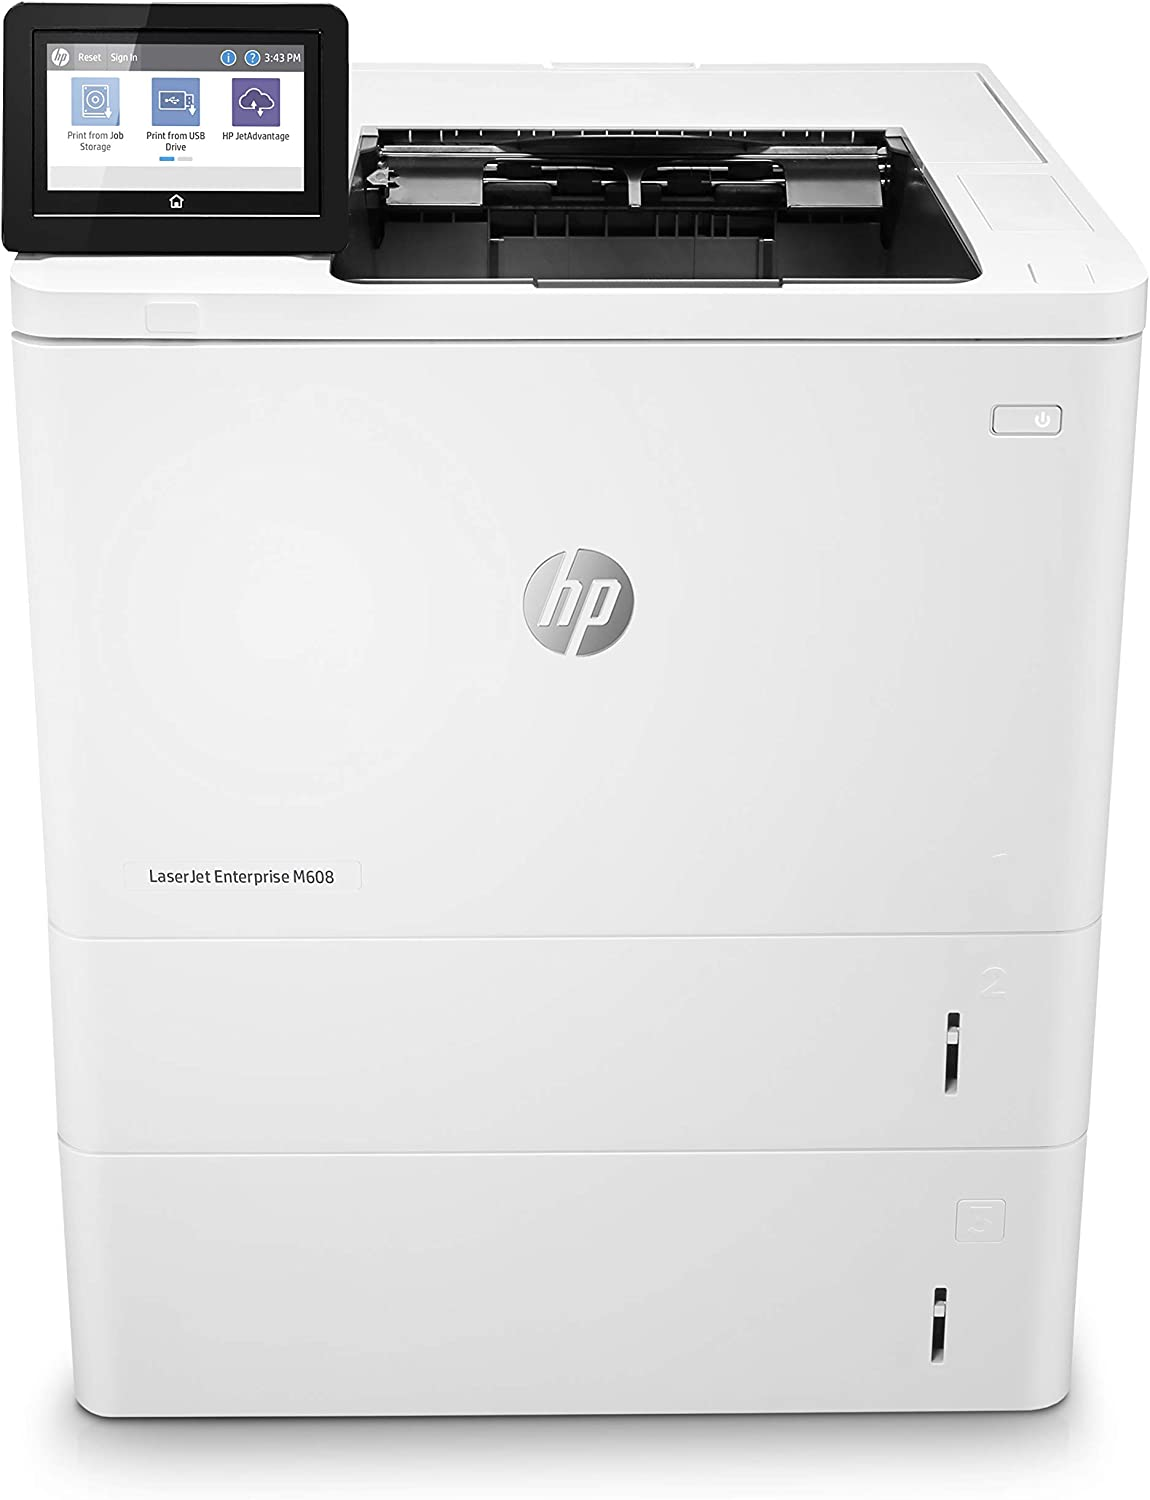 HP LaserJet Enterprise M608x Monochrome Duplex Printer with One-Year, Next-Business Day, Onsite -Warranty and Extra Paper Tray (K0Q19A)